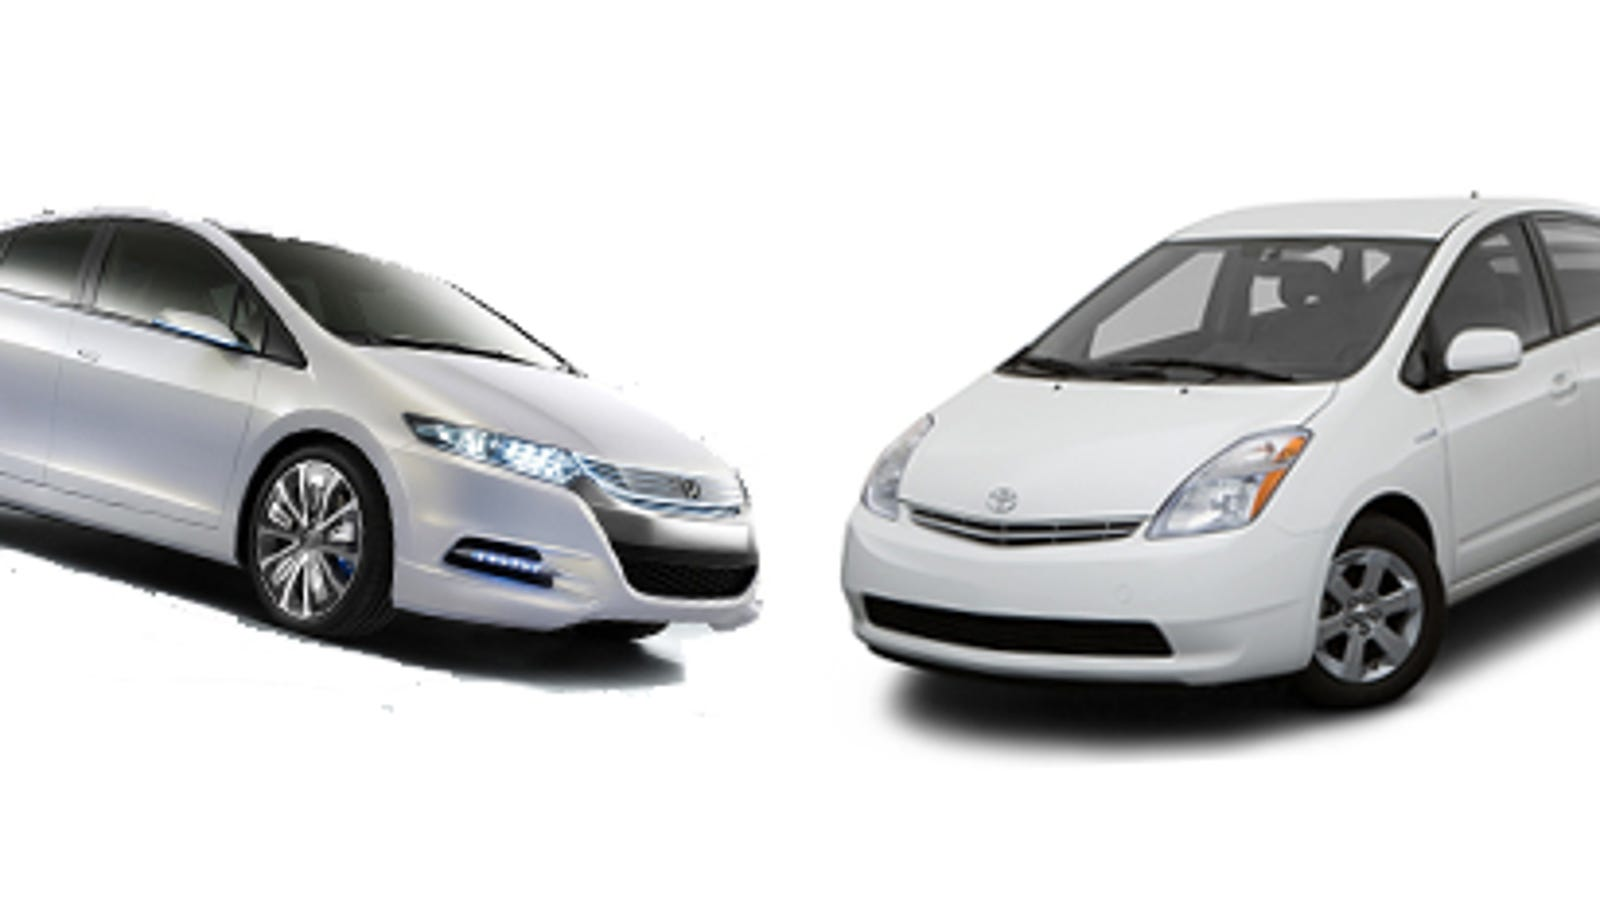 Honda Insight Vs Toyota Prius Separated At Birth